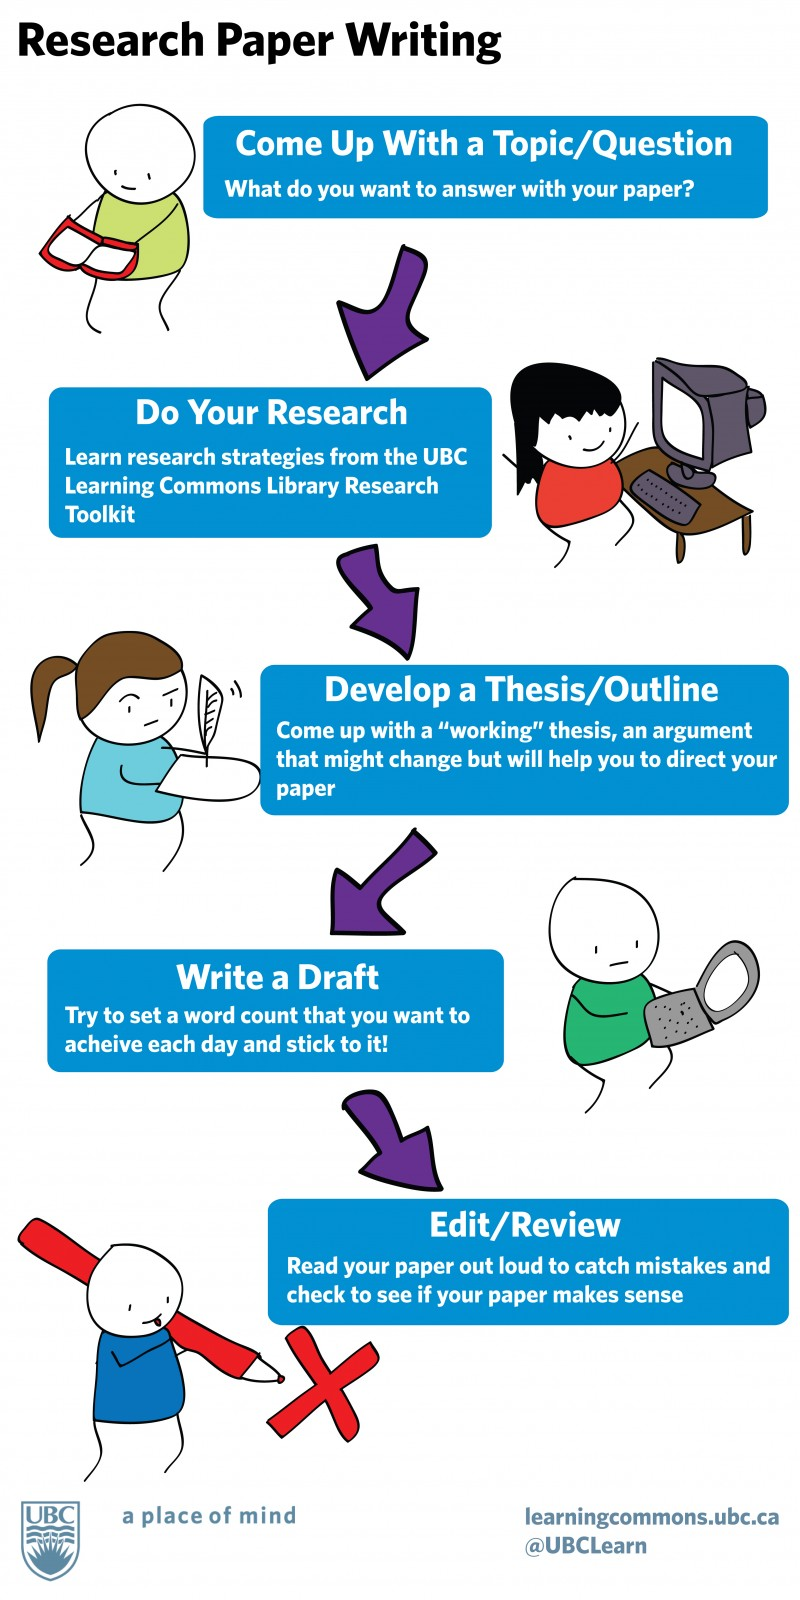 "Flowchart illustrated with cartoon figures. Title: Research Paper Writing. First step: Come up with a topic/question. What do you want to answer with your paper? Next, Do your research. Learn research strategies from the UBC Learning Commons Library Research Toolkit. Next, Develop a thesis/outline. Come up with a ""working"" thesis, an argument that might change but will help you direct your paper. Next, write a draft. Try to set a word count that you want to achieve each day and stick to it! Next, Edit/review. Read your paper out loud to catch mistakes and check to see if your paper makes sense. At the bottom is a logo for University of British Columbia, a place of mind, and learningcommons.ubc.ca@UBCLearn."